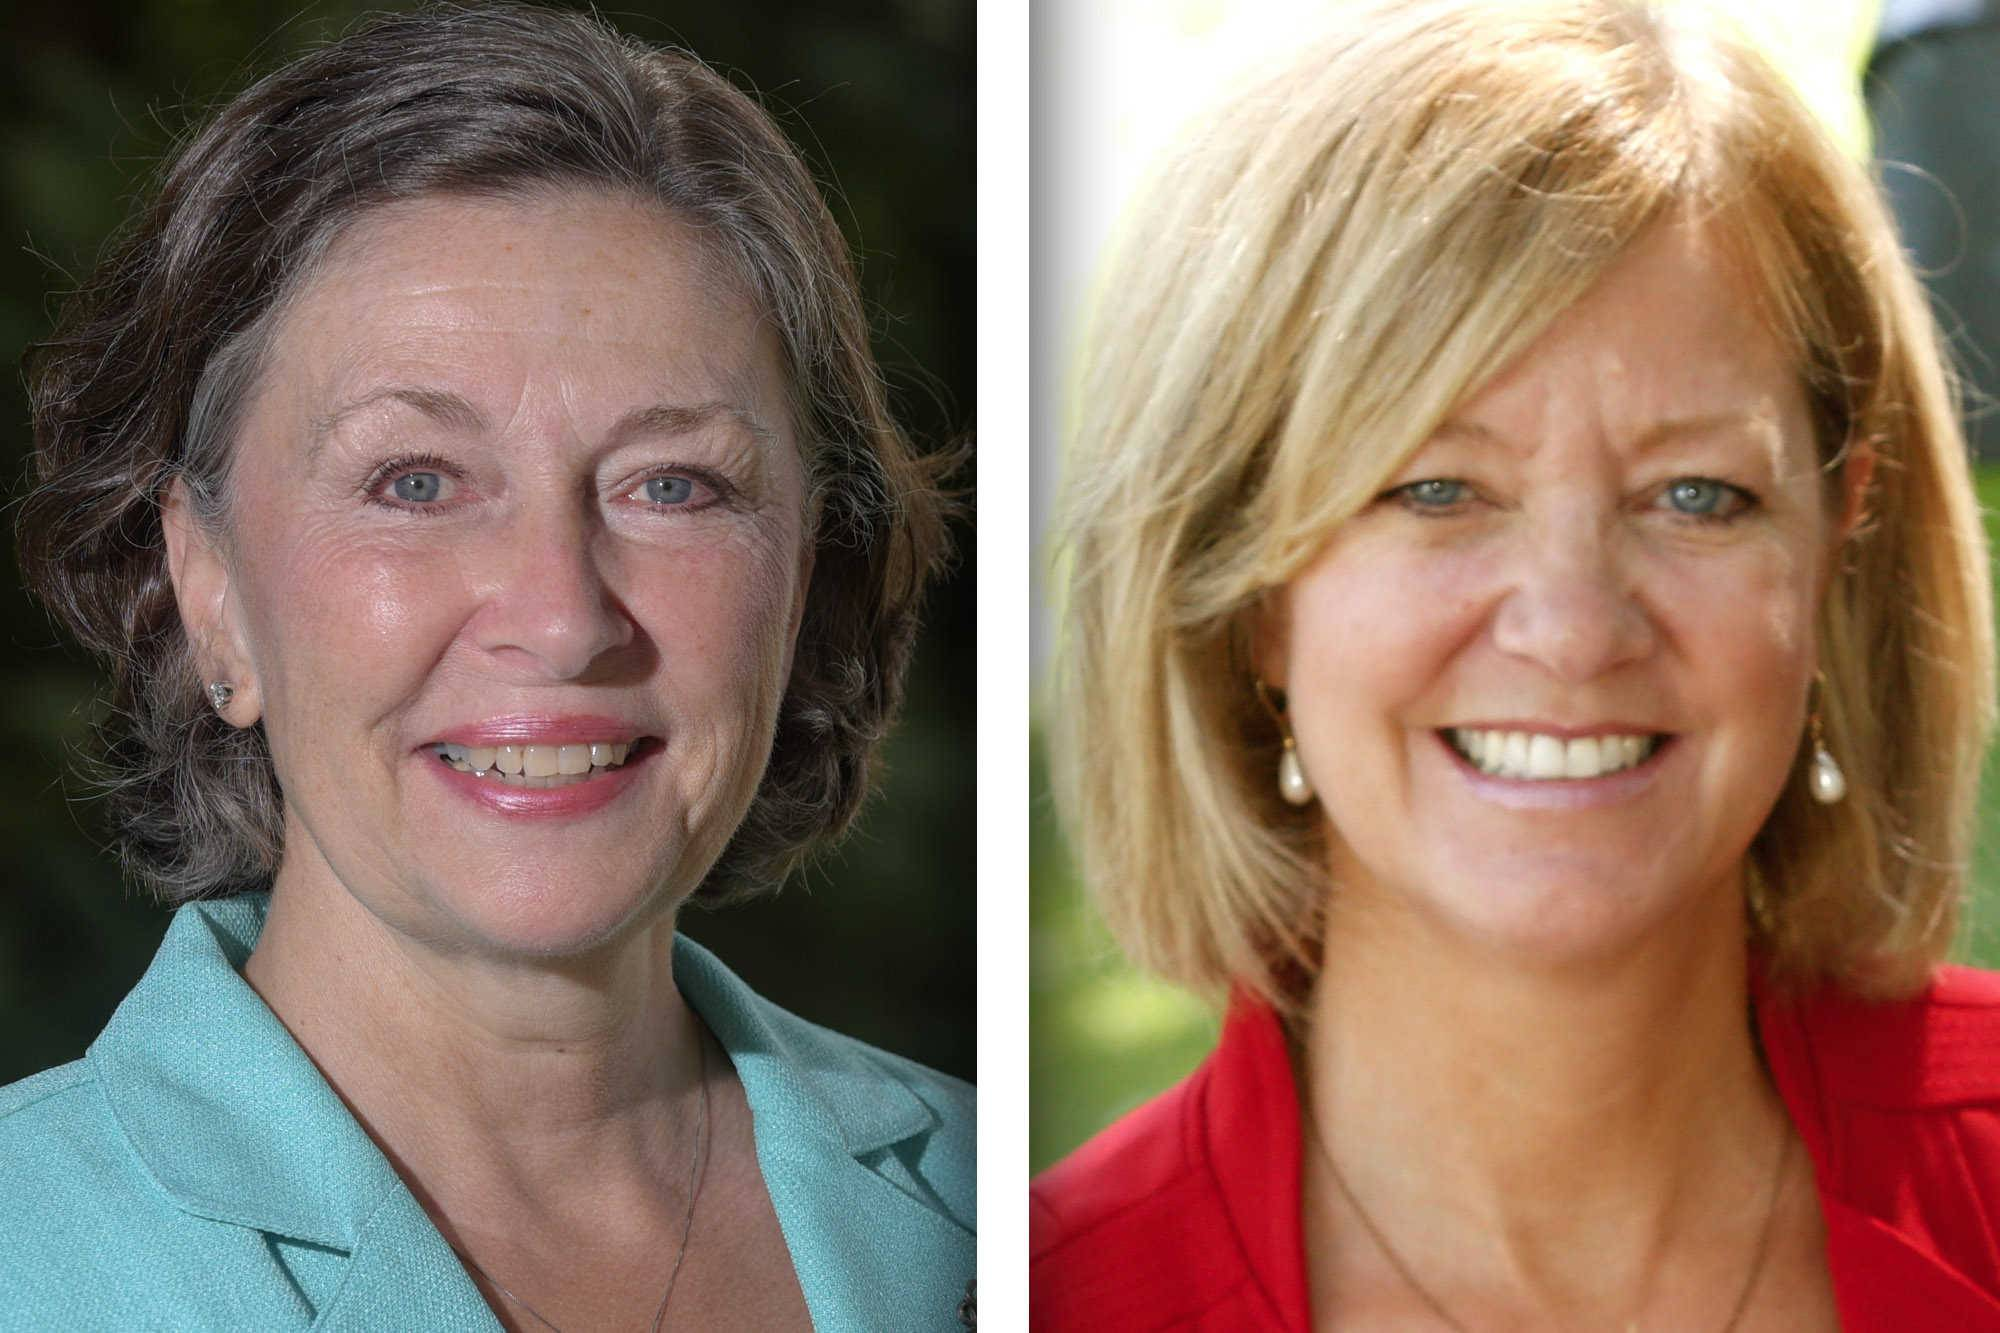 Democrat Kathleen Carrier of Carol Stream, left, is challenging Republican incumbent Jeanne Ives of Wheaton for the 42nd District state House seat representing all or parts of Wheaton, Winfield, Carol Stream, Warrenville, Lisle, West Chicago, Naperville and Woodridge.